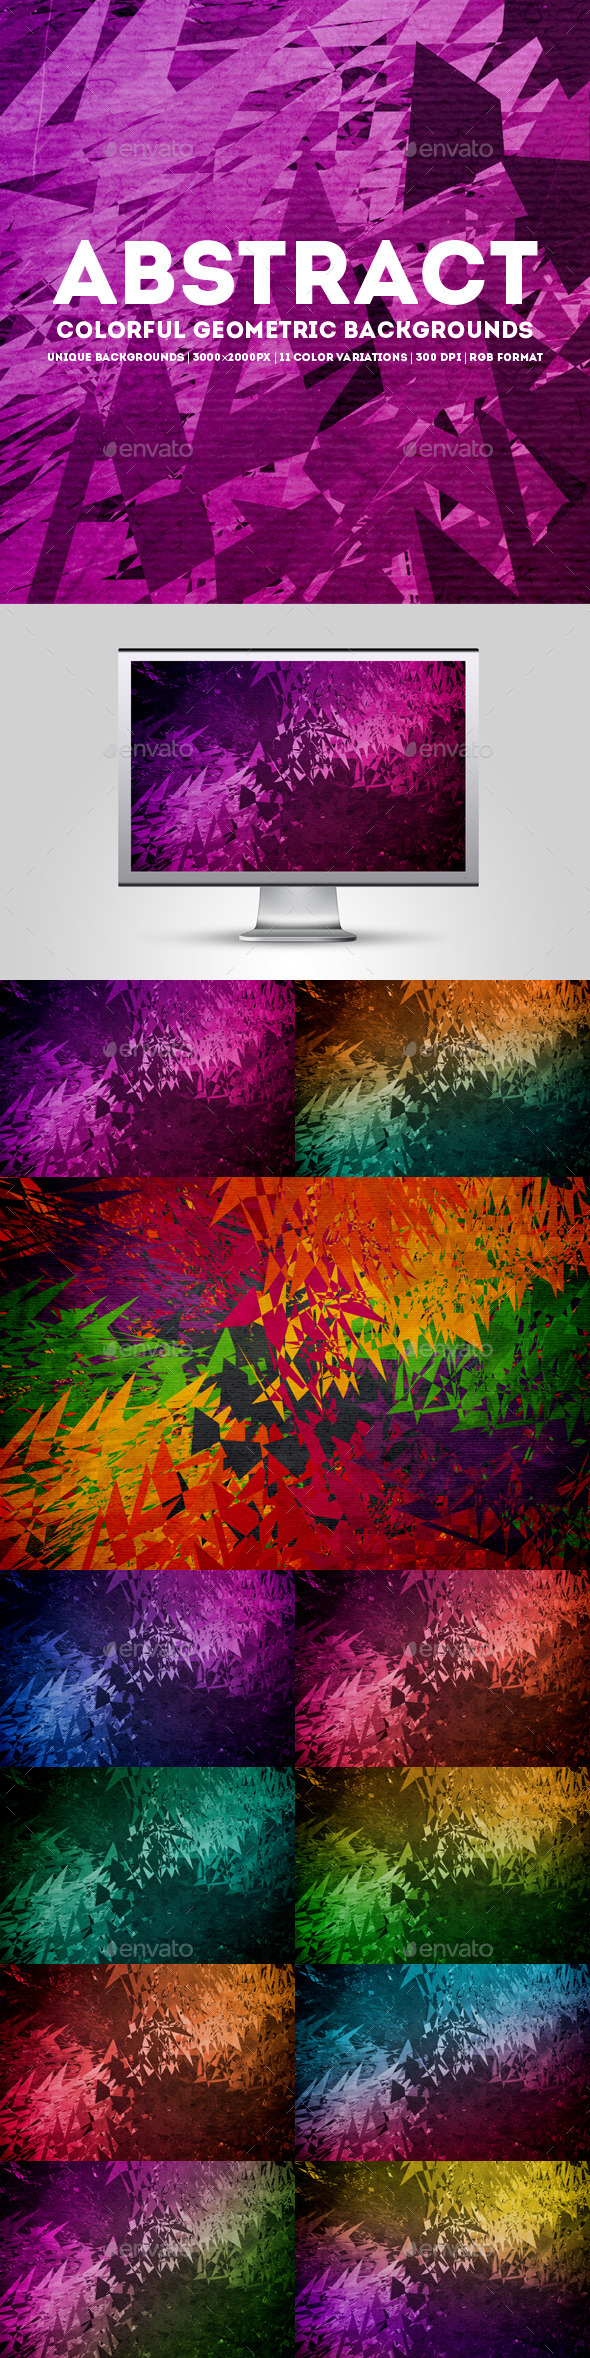 GraphicRiver Abstract Colorful Geometric Backgrounds 11615843